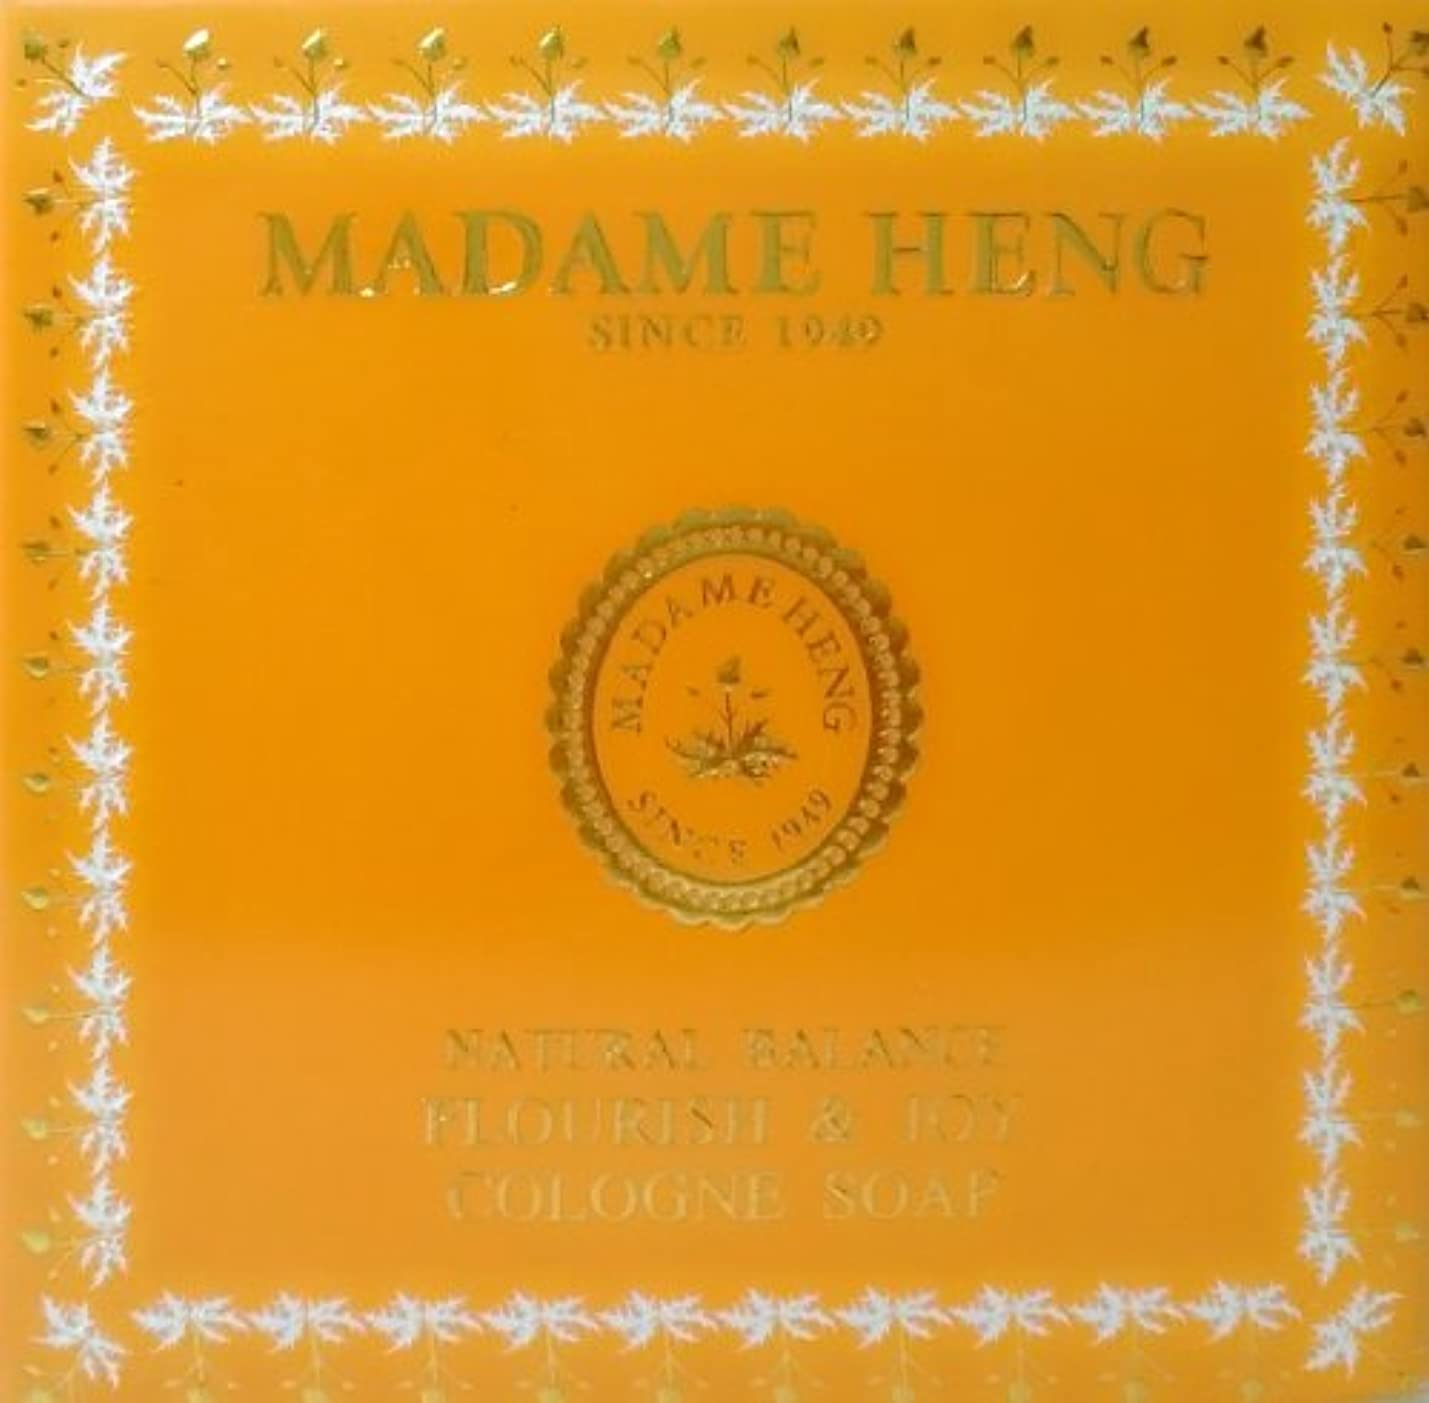 MADAME HENG NATURAL BALANCE FLOURISH & JOY COLOGNE SOAP